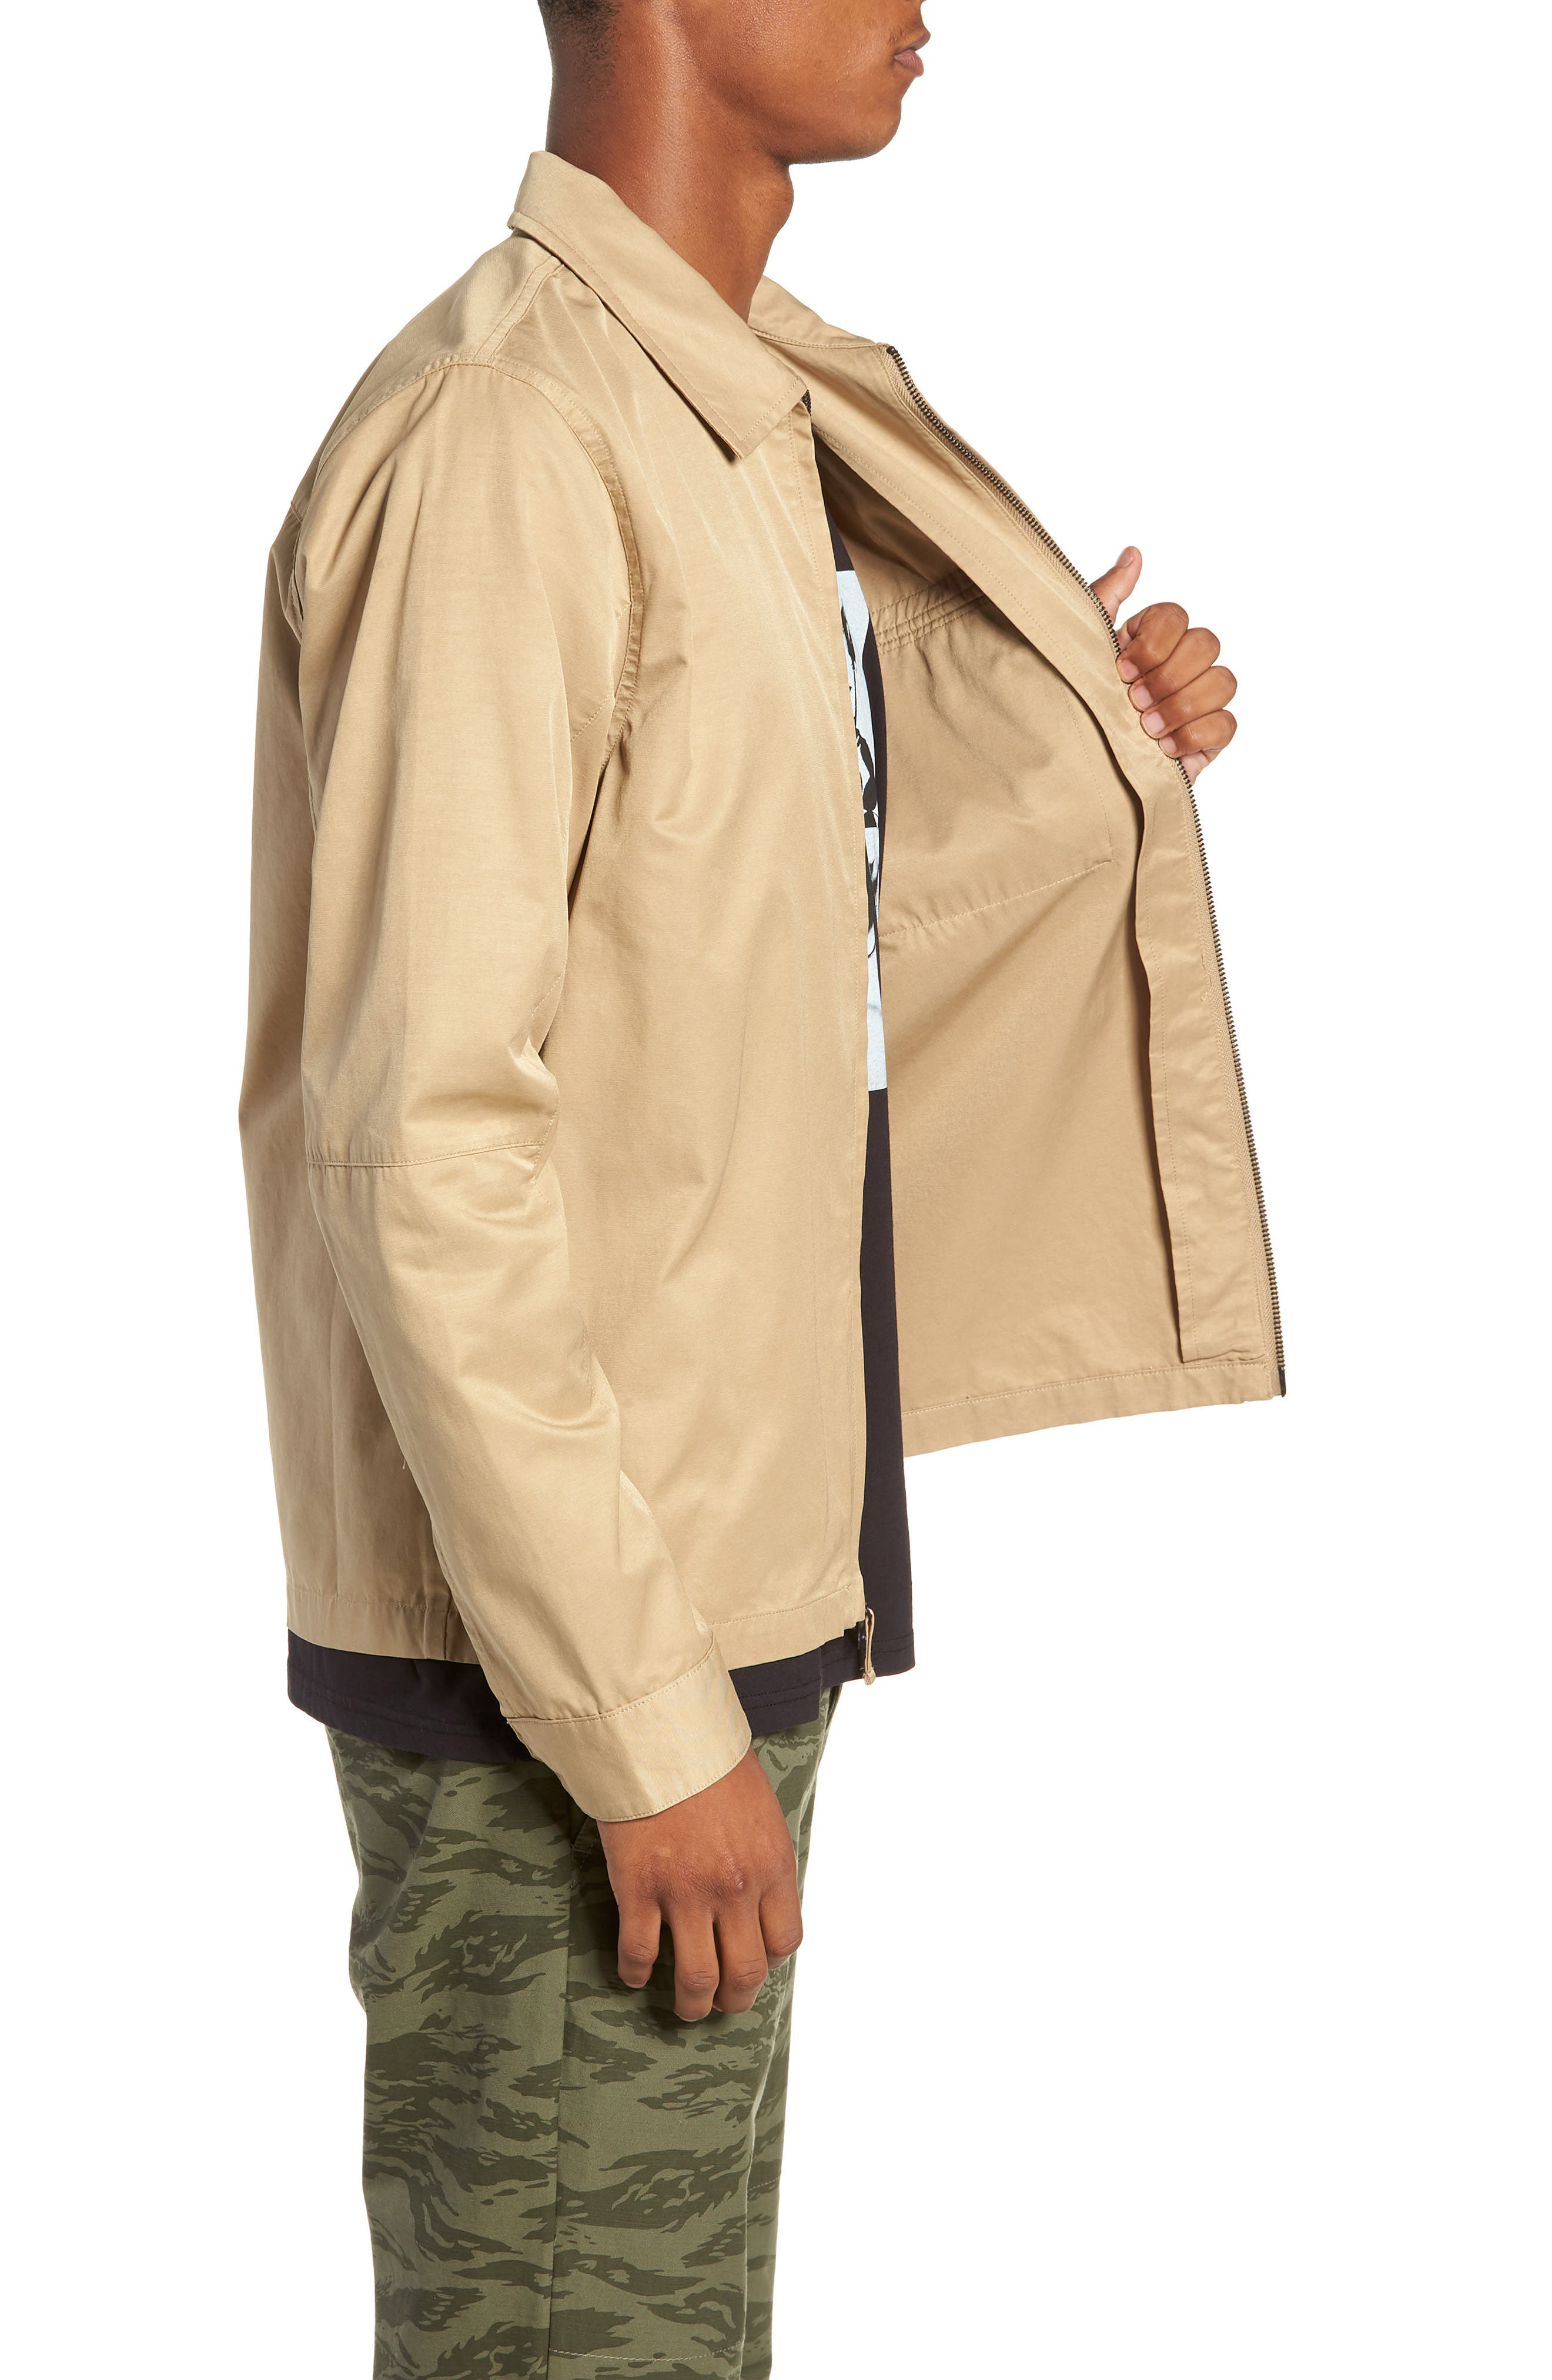 Hale Shirt Jacket,                             Alternate thumbnail 3, color,                             200